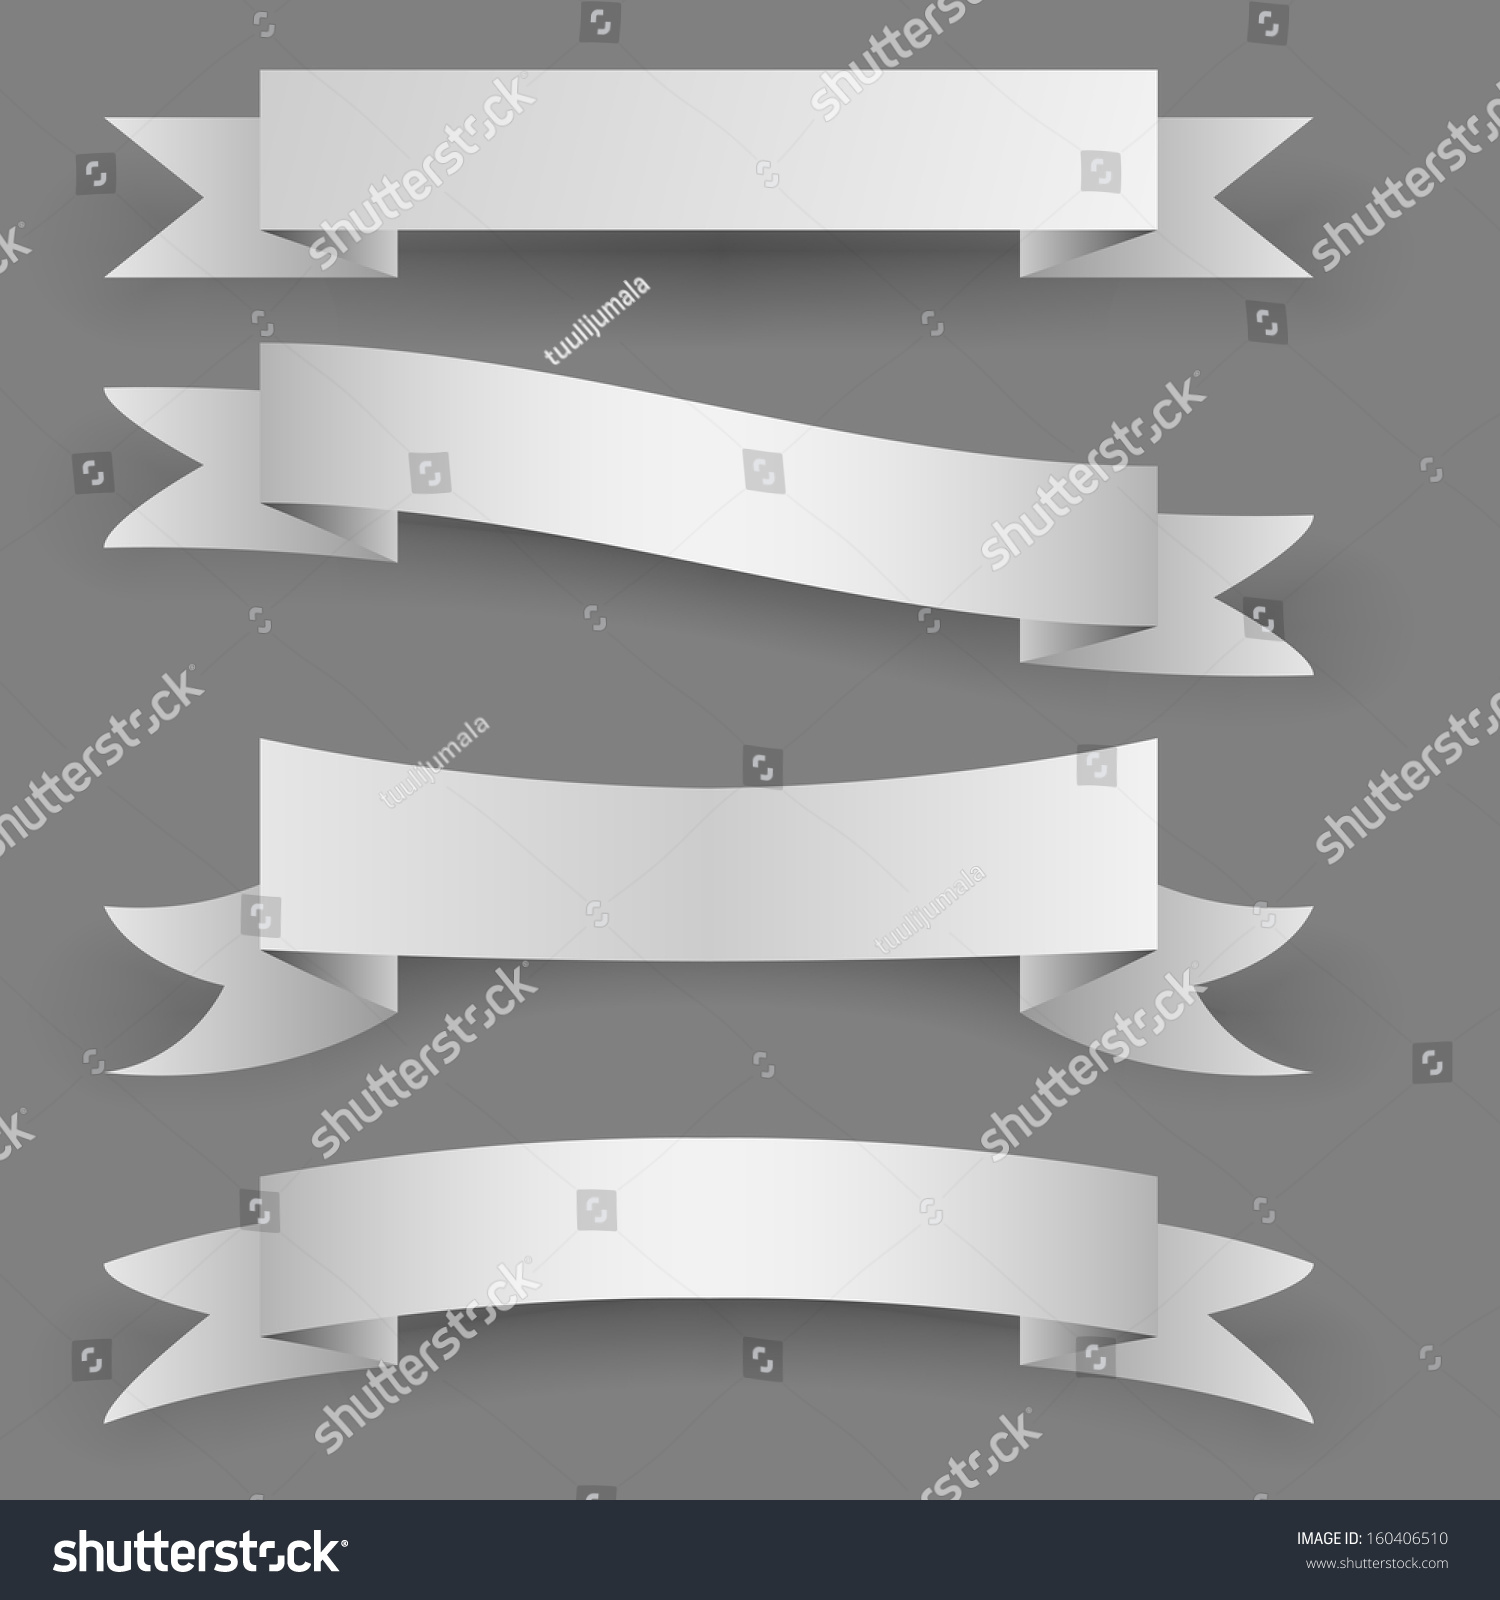 Blank Paper Banners Shadow Template Isolated Stock Vector ...